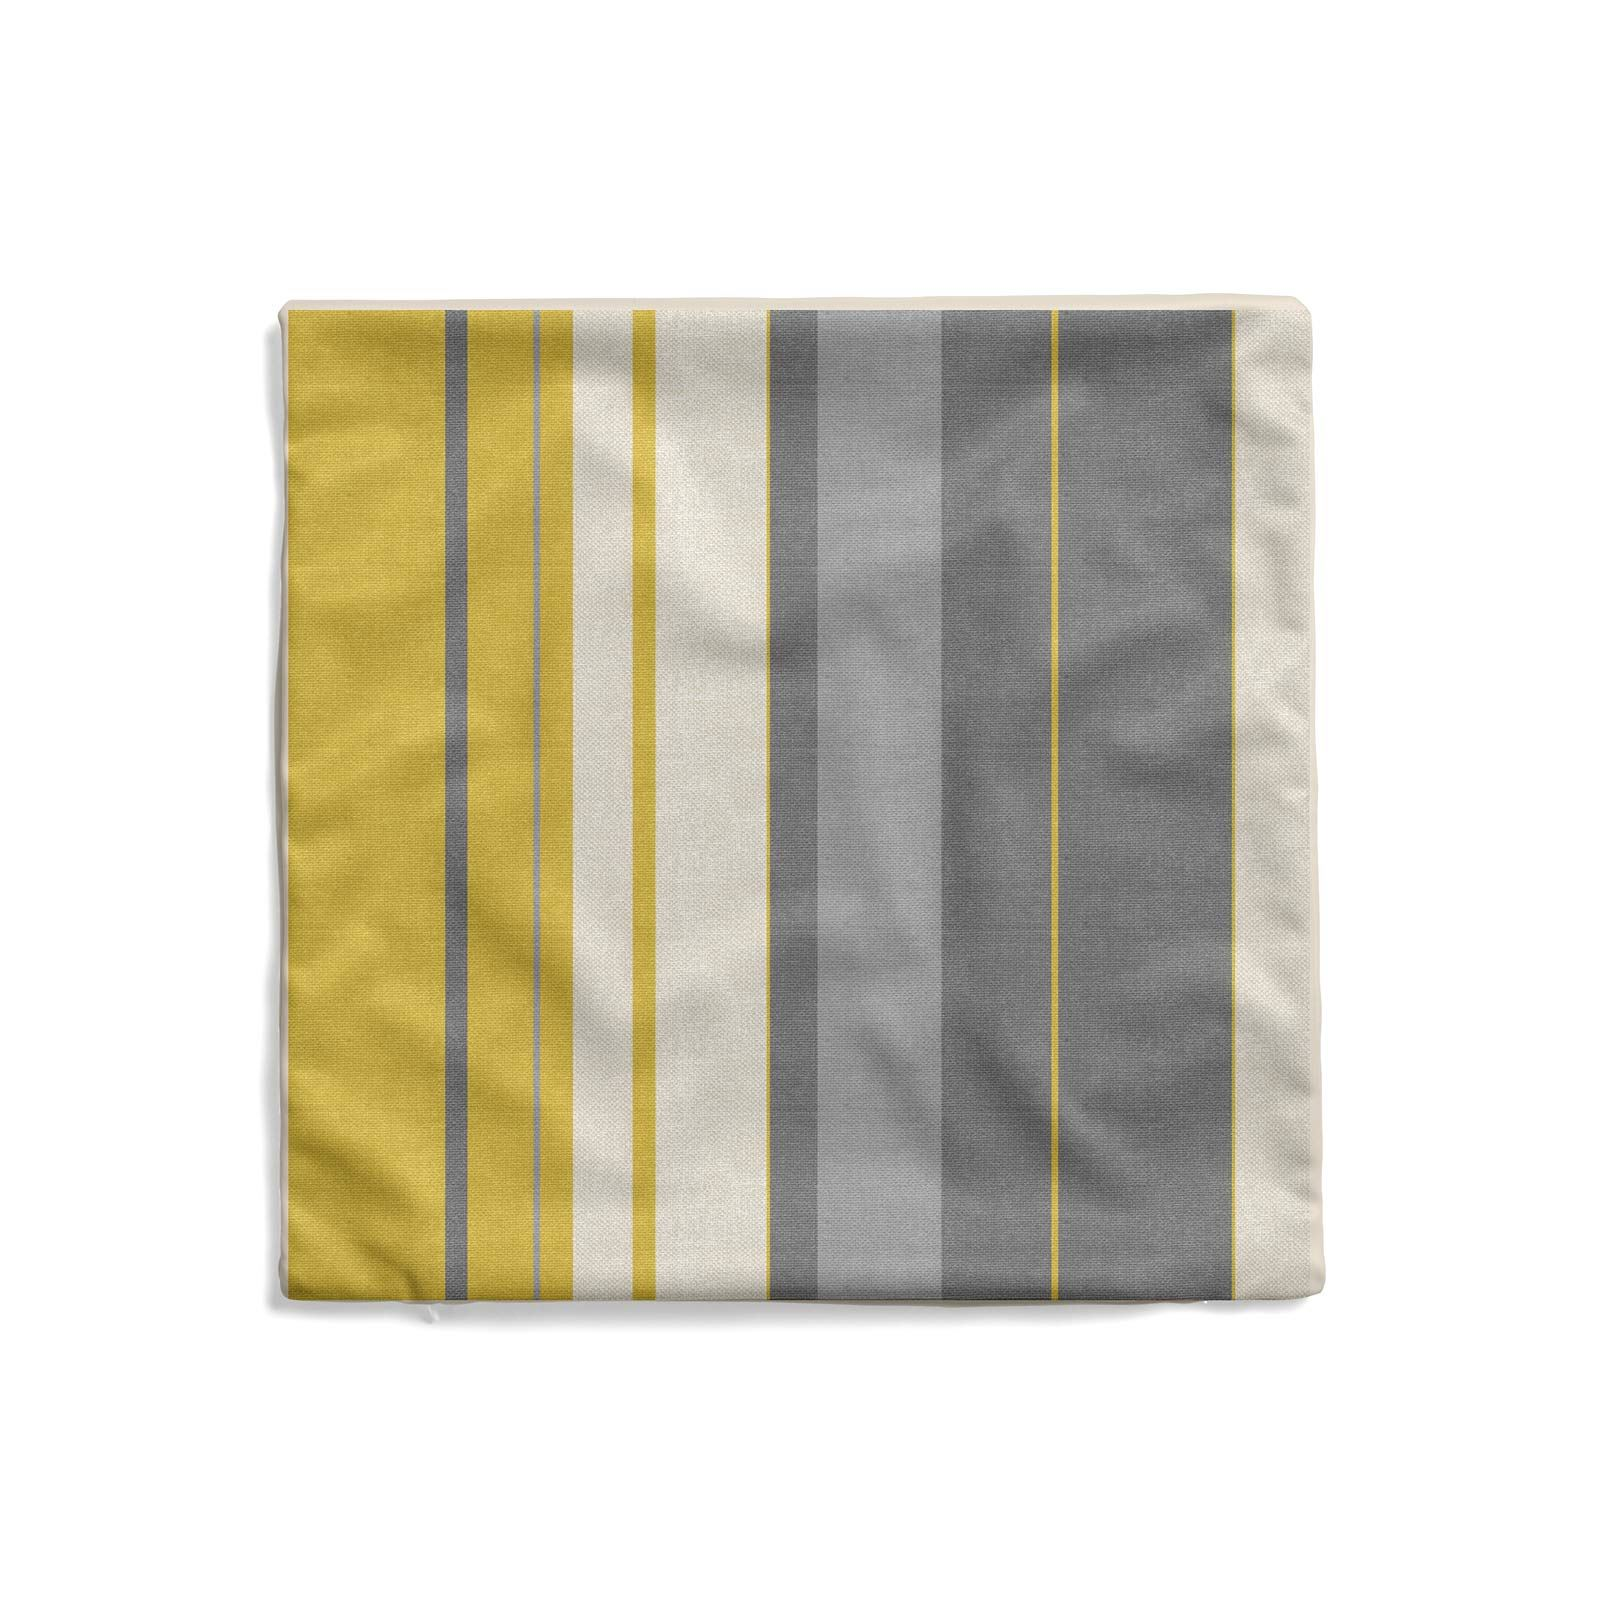 Grey-Ochre-Mustard-Cushion-Cover-Collection-17-034-18-034-Covers-Filled-Cushions thumbnail 100